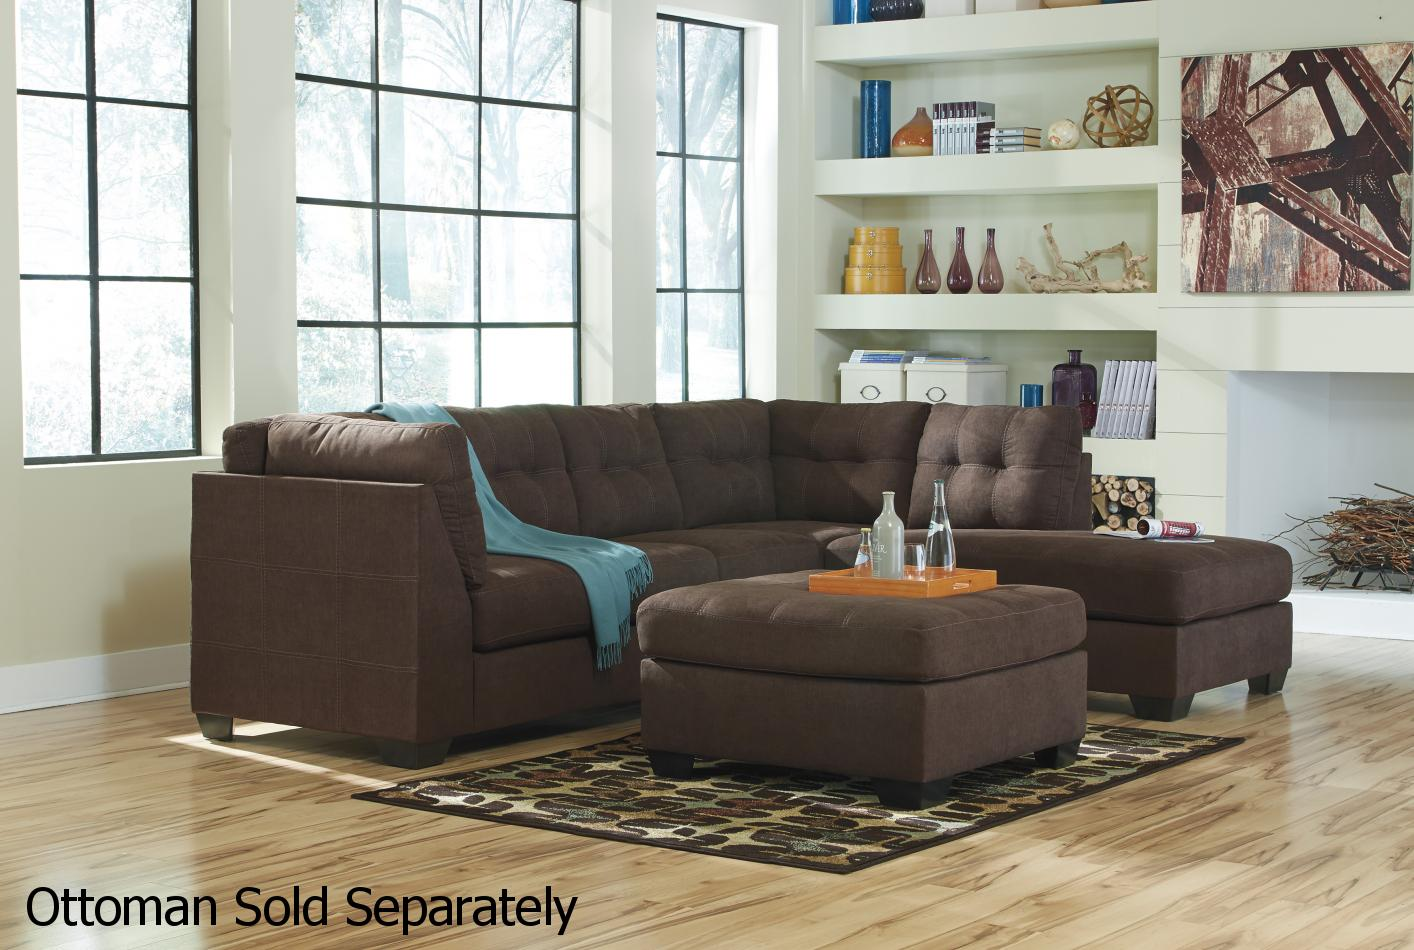 Ashley Furniture Sectional Fabric maier brown fabric sectional sofa - steal-a-sofa furniture outlet